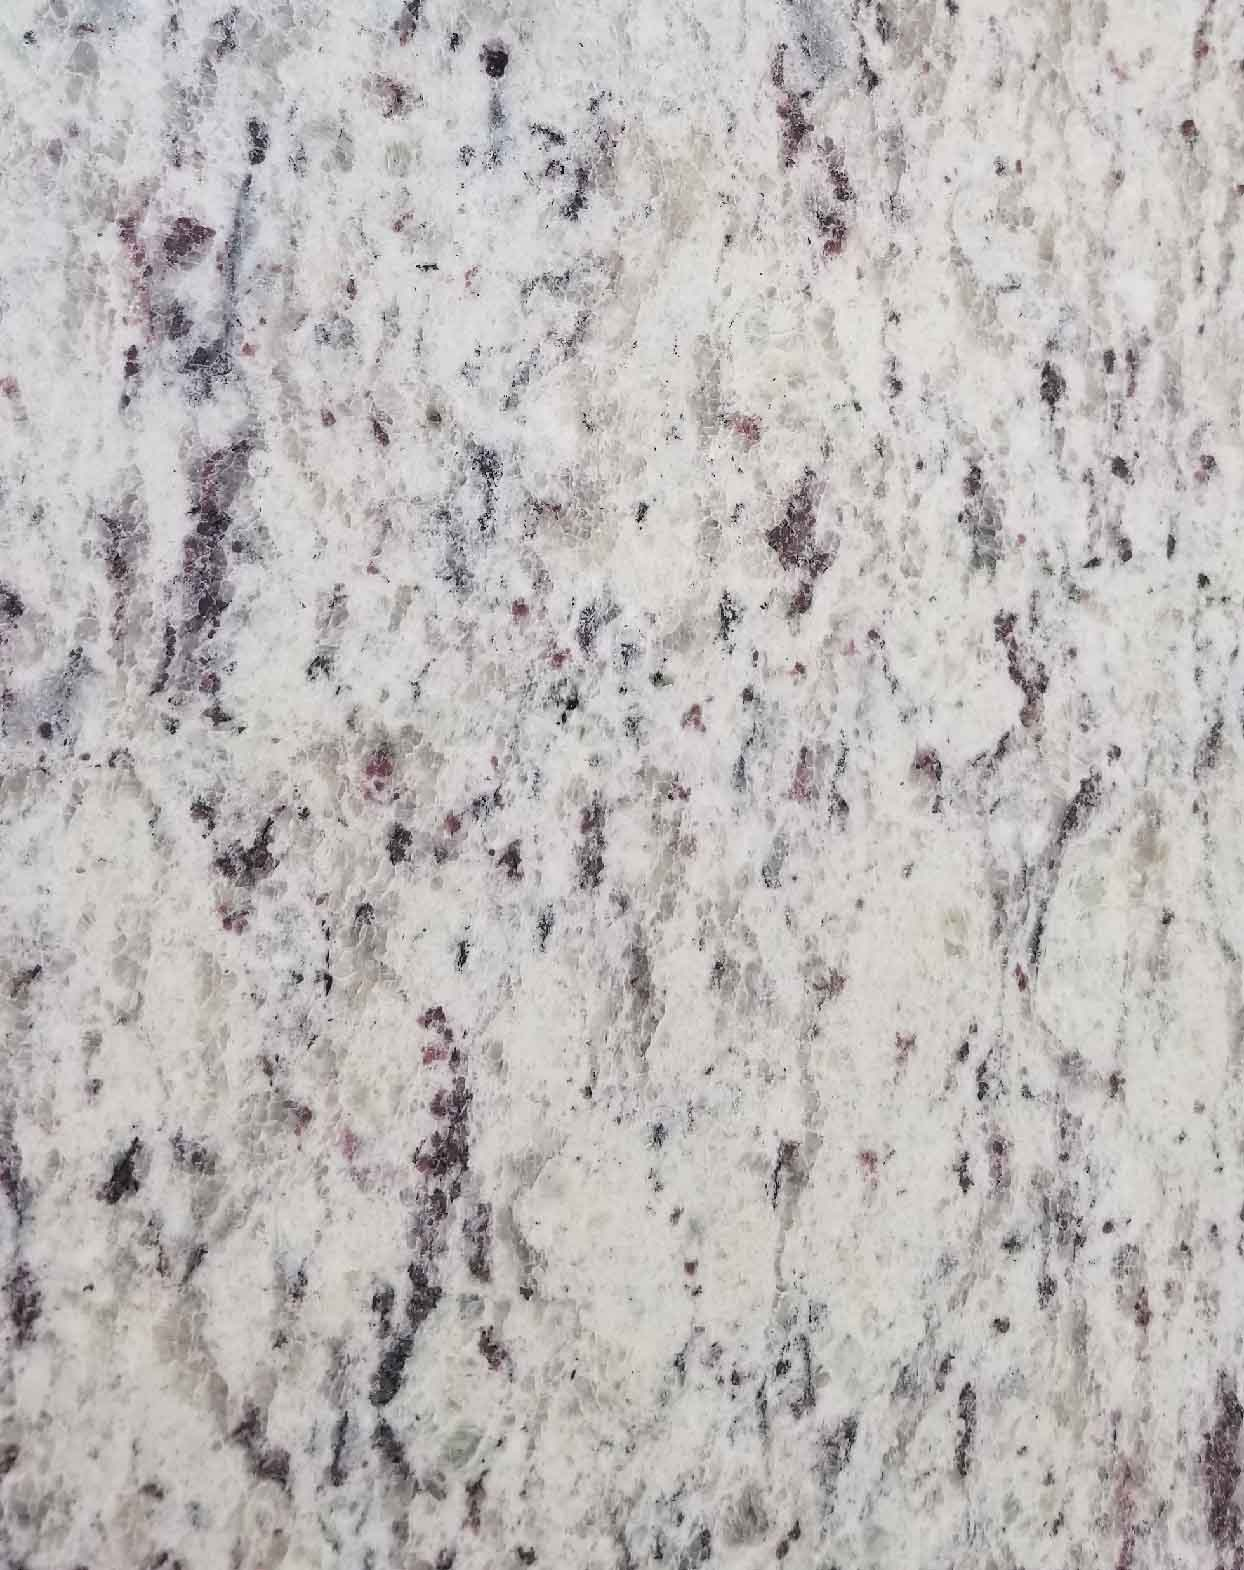 Ornamental White Granite Level 1 available at East Coast Granite of Charlotte